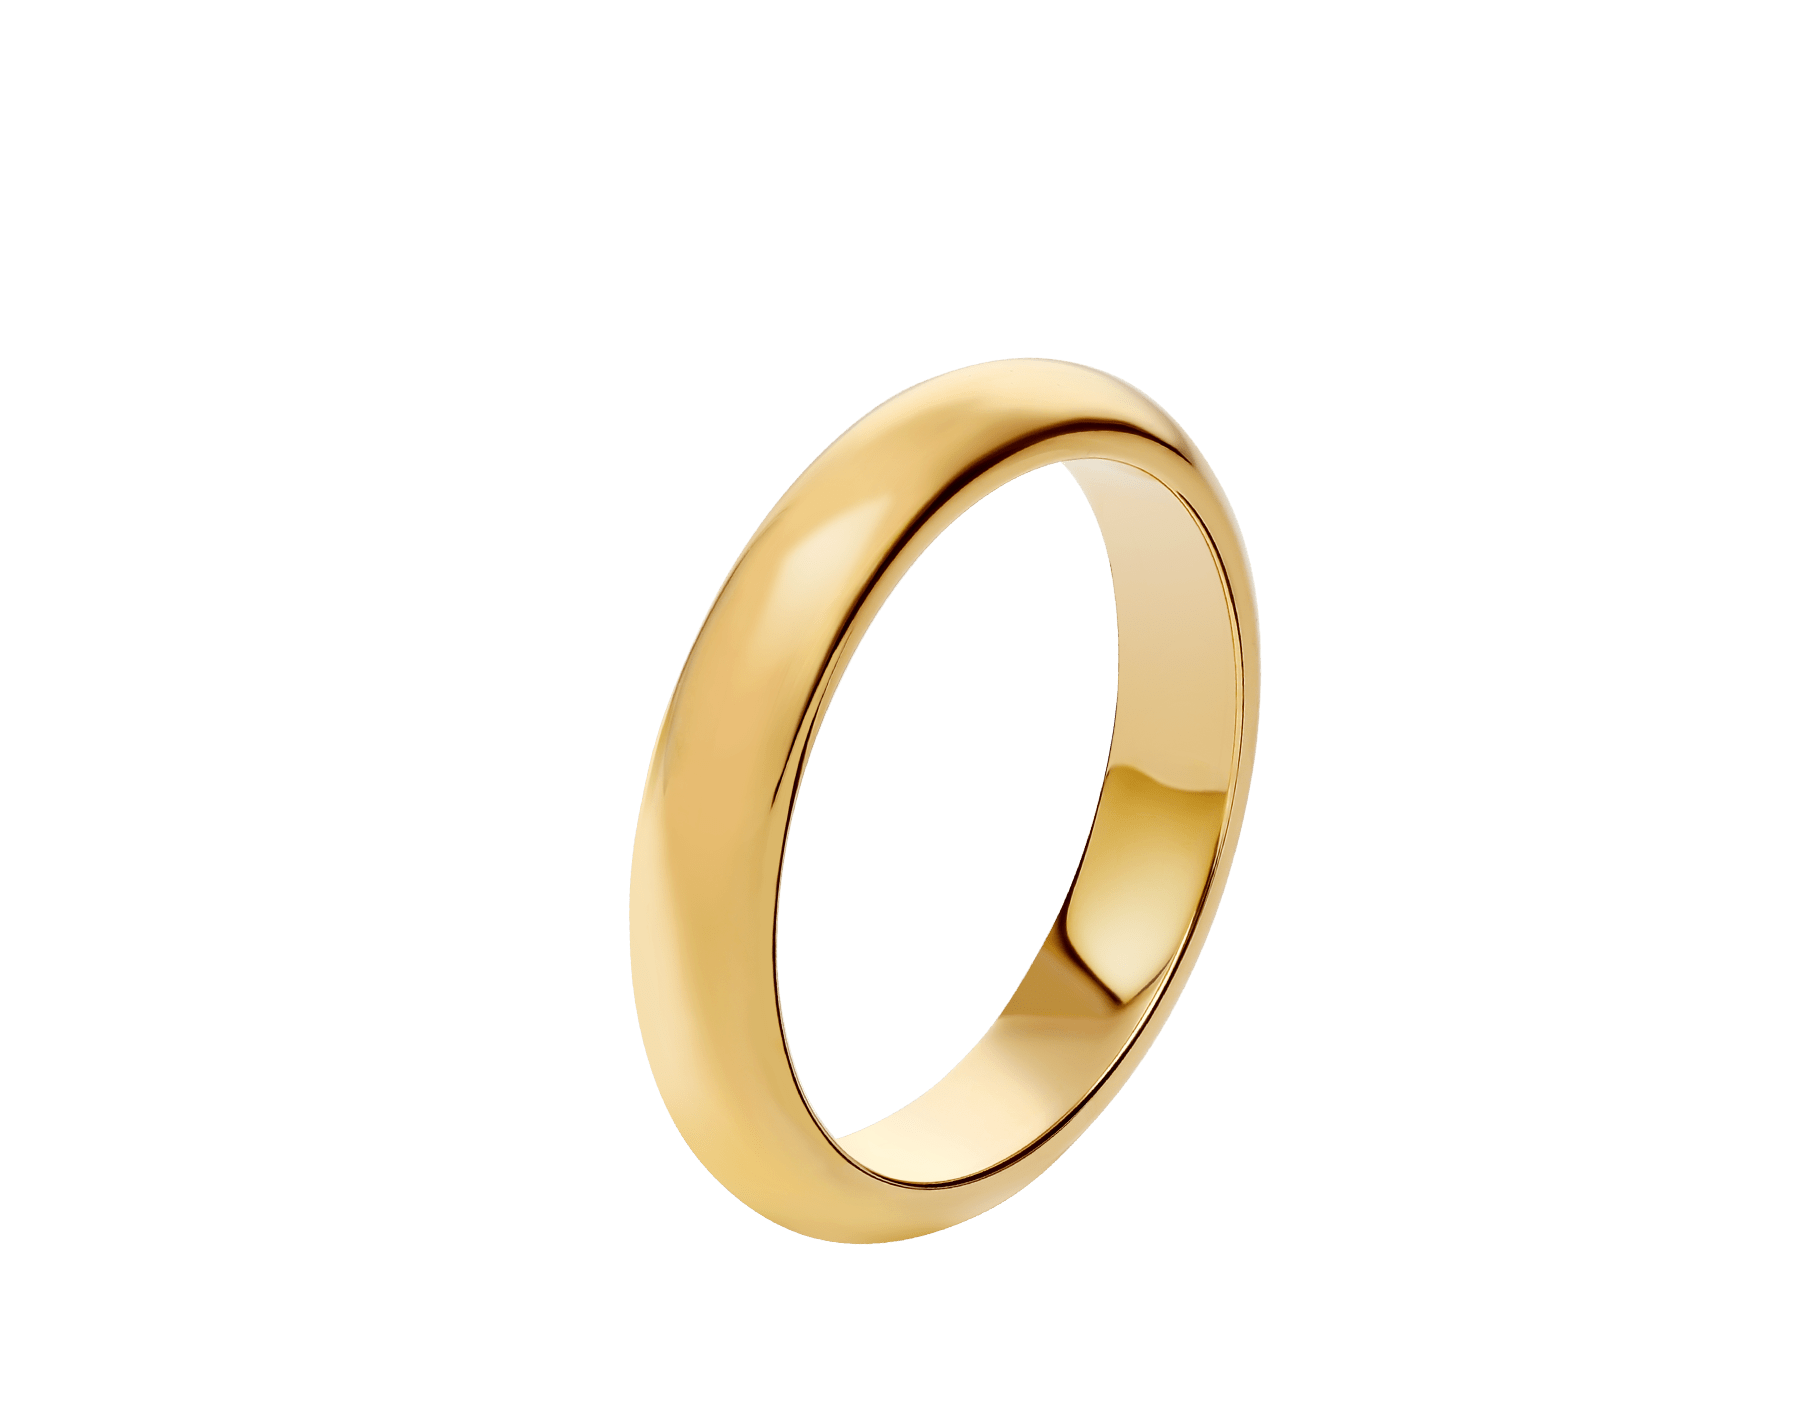 Fedi Wedding Band in 18 kt yellow gold Fedi-6 image 1